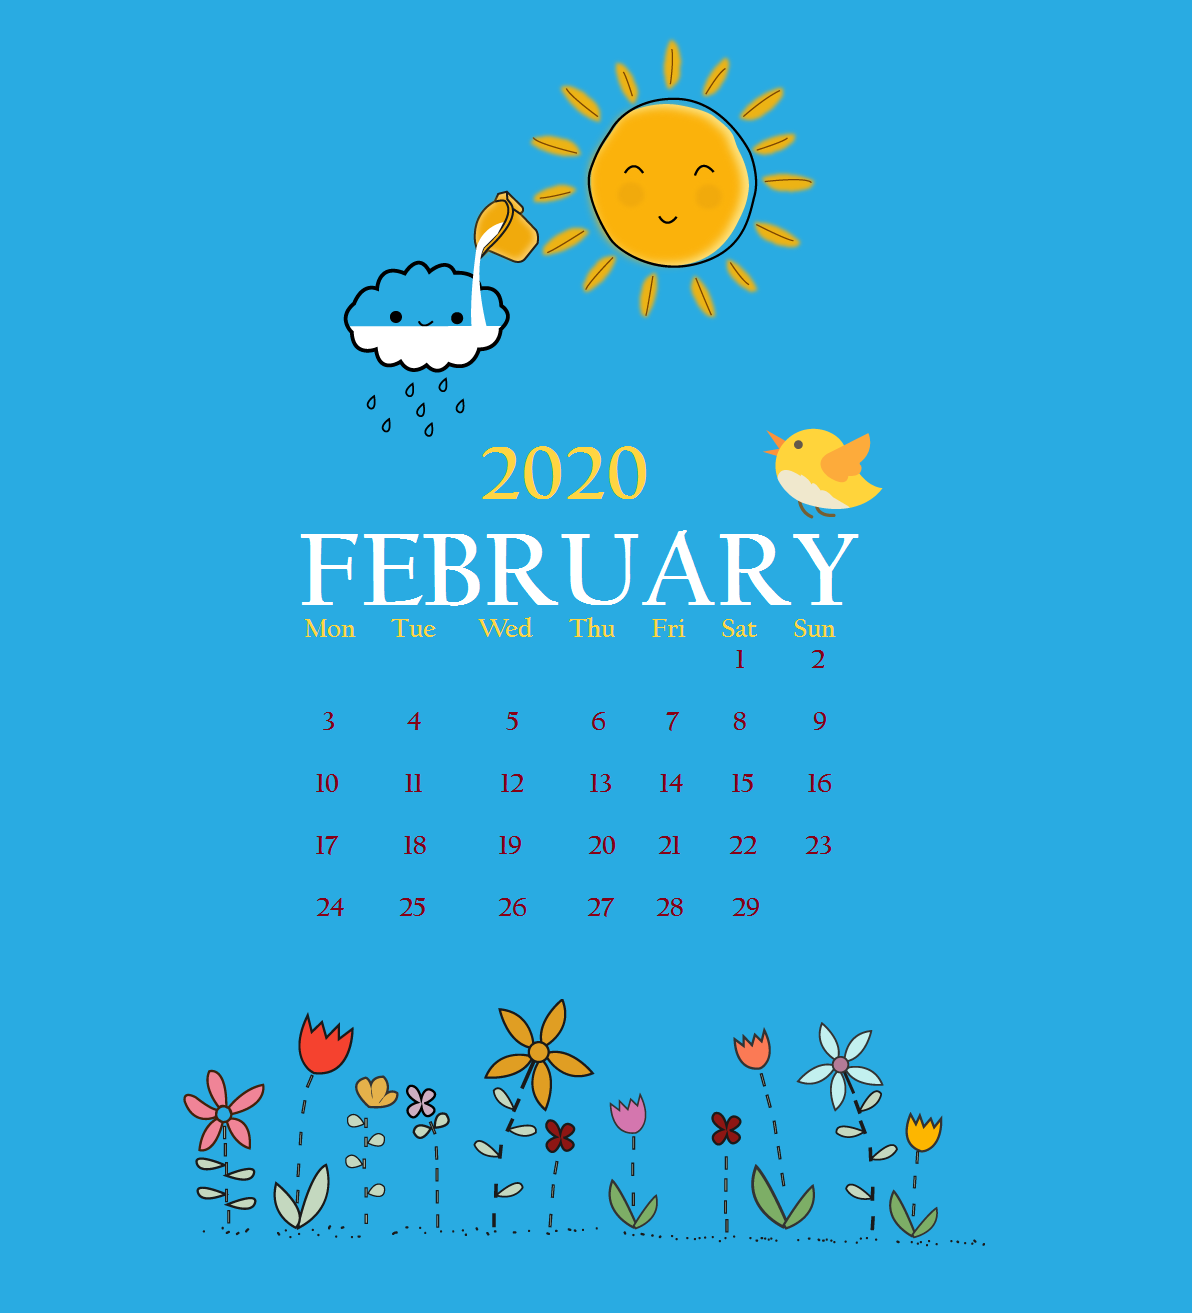 Latest February 2020 iPhone Screensaver